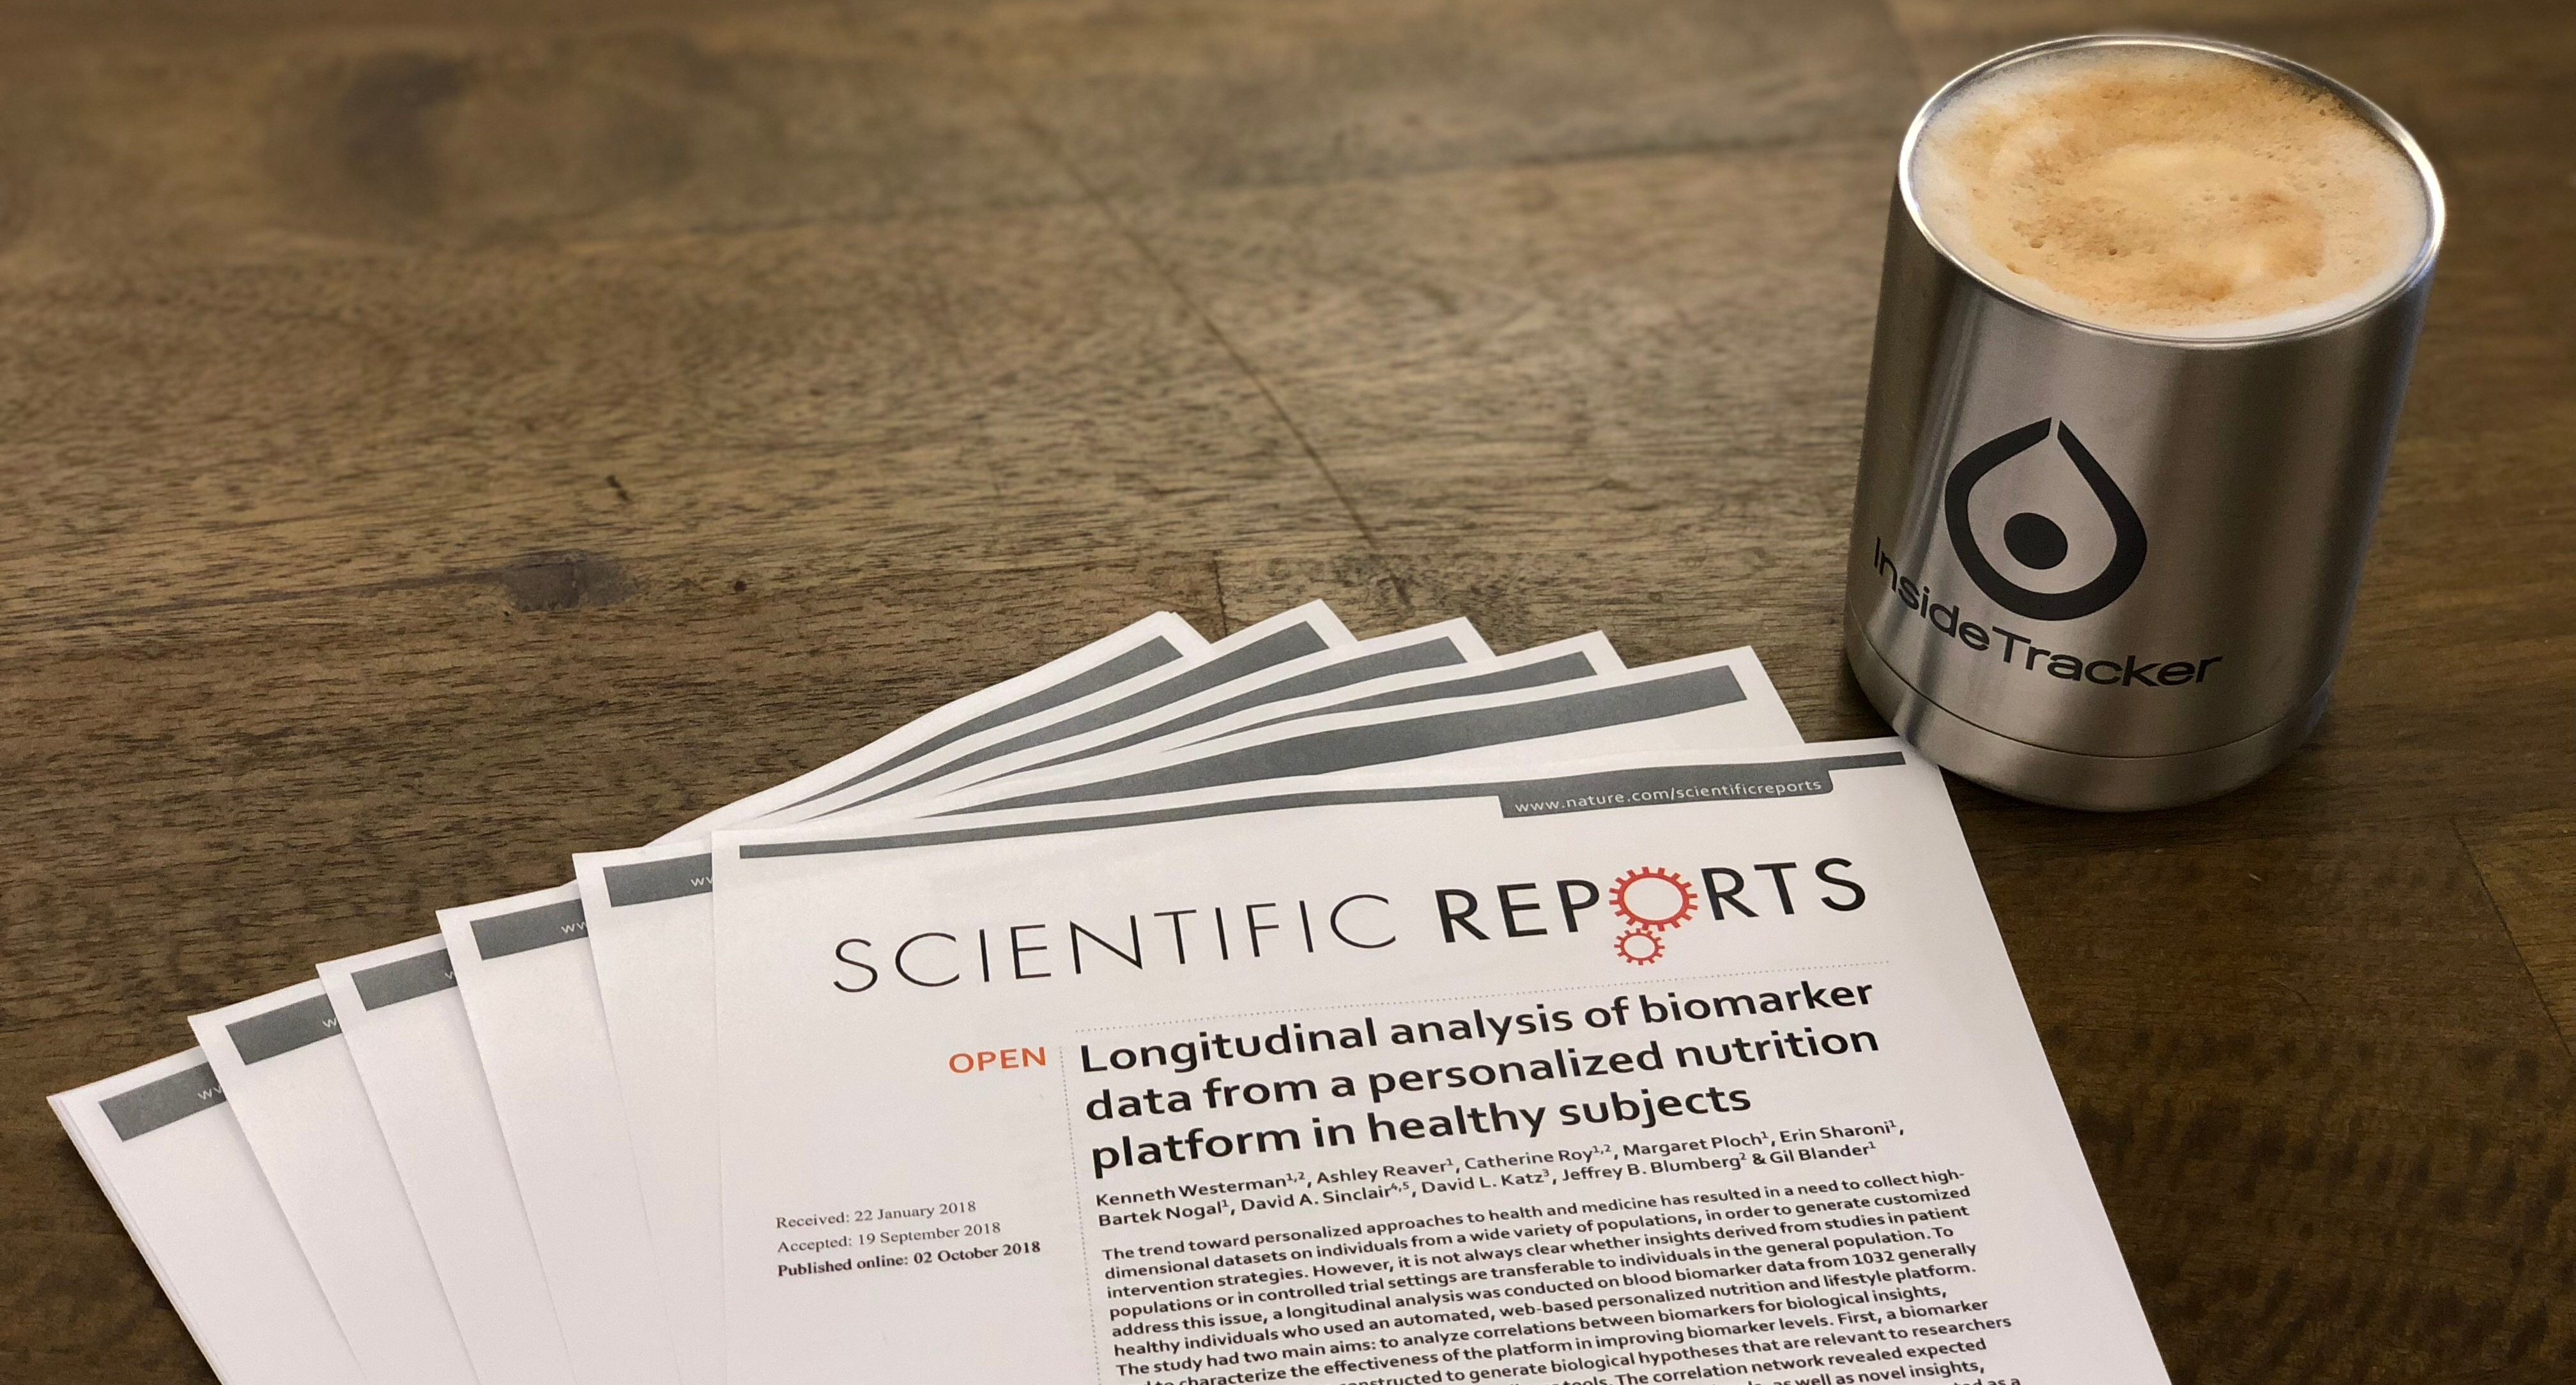 scientific reports paper blog image-401634-edited